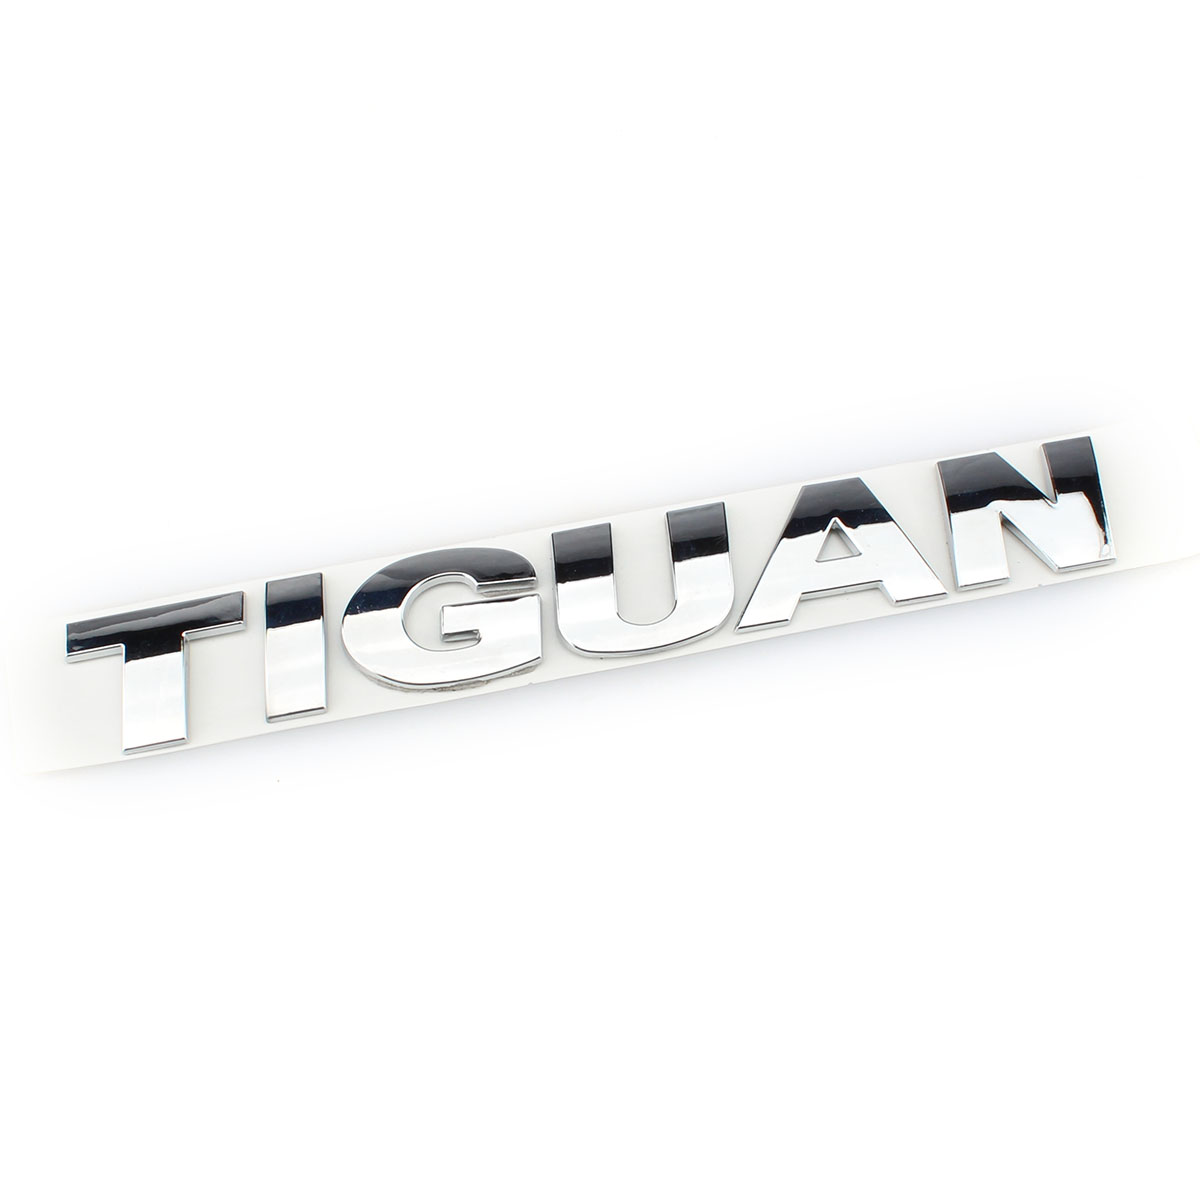 OEM 185mm Silver Chrome Car Auto Rear Trunk Lid Badge Decal Sticker TIGUAN Logo for VW Volkswagen Emblem New fit for volkswagen vw tiguan rear trunk scuff plate stainless steel 2010 2011 2012 2013 tiguan car styling auto accessories